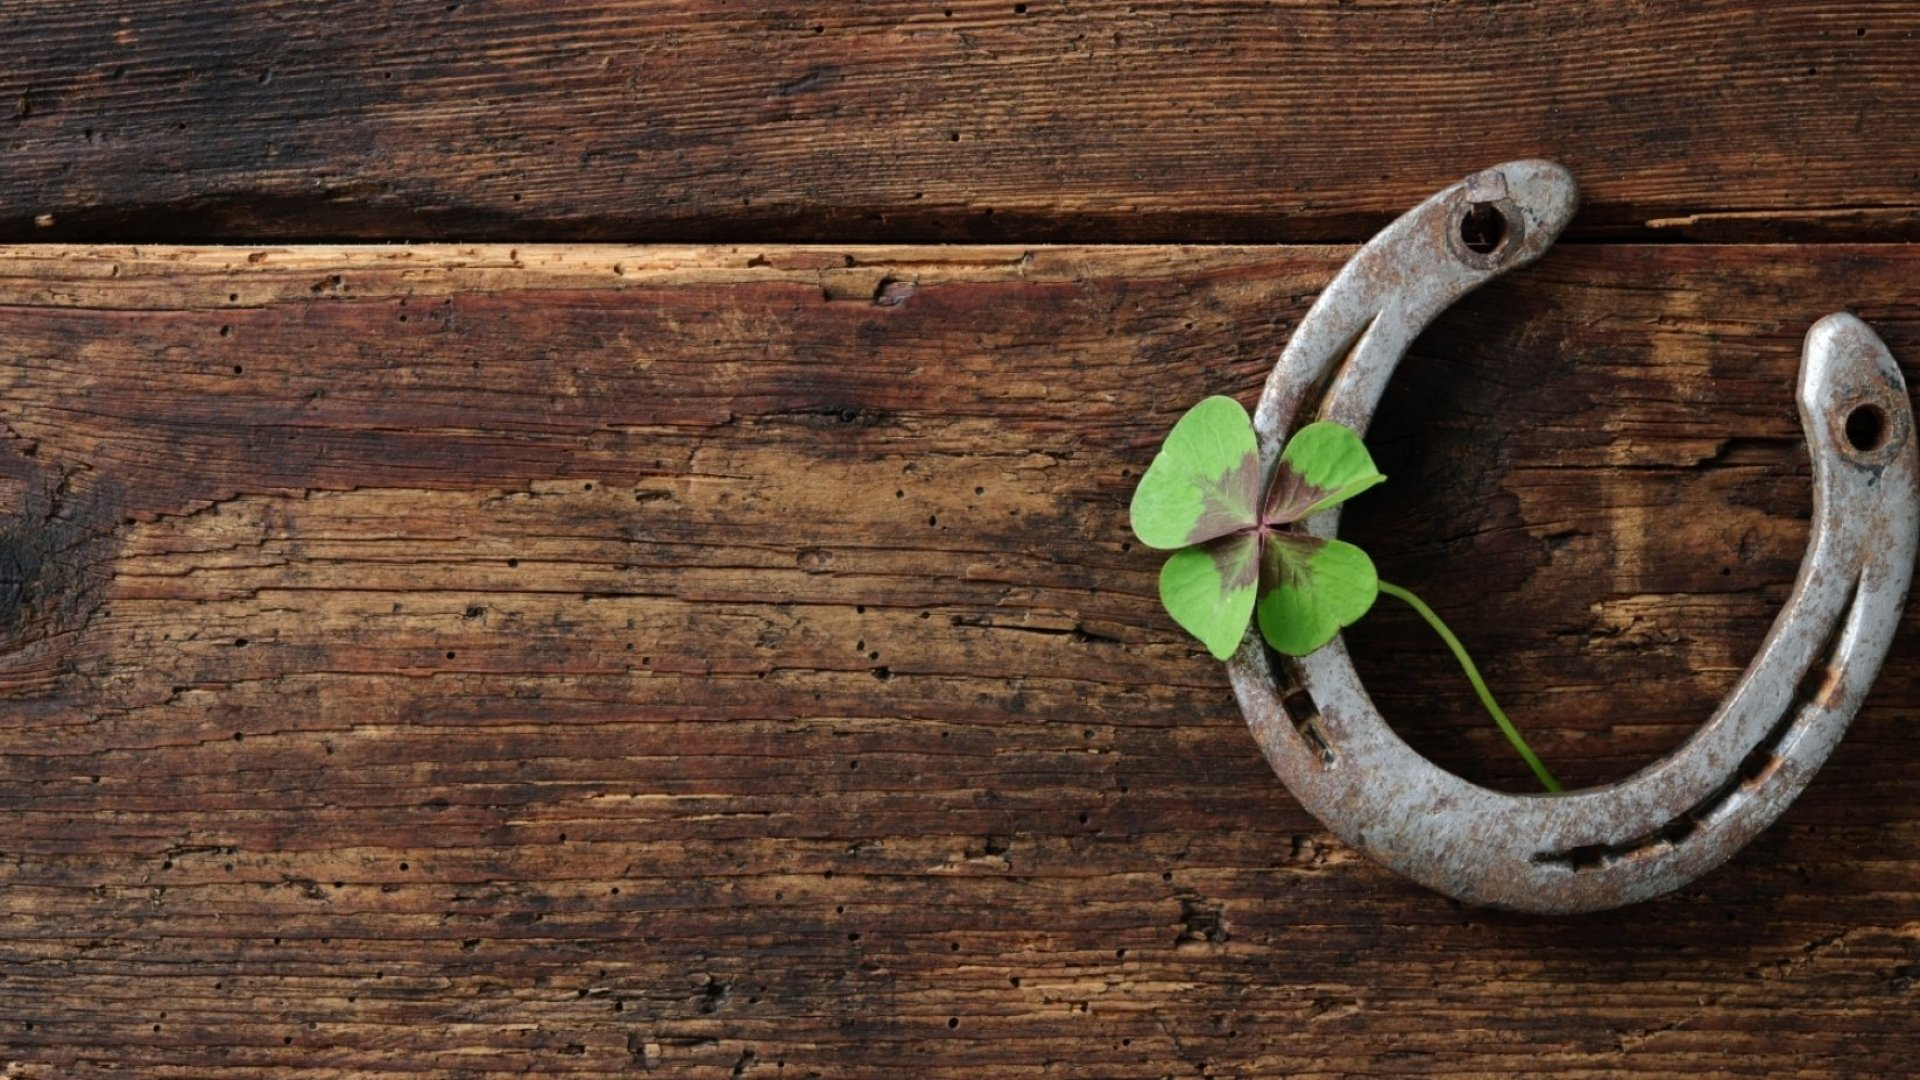 6 Proven Ways to Generate Good Luck Every Day